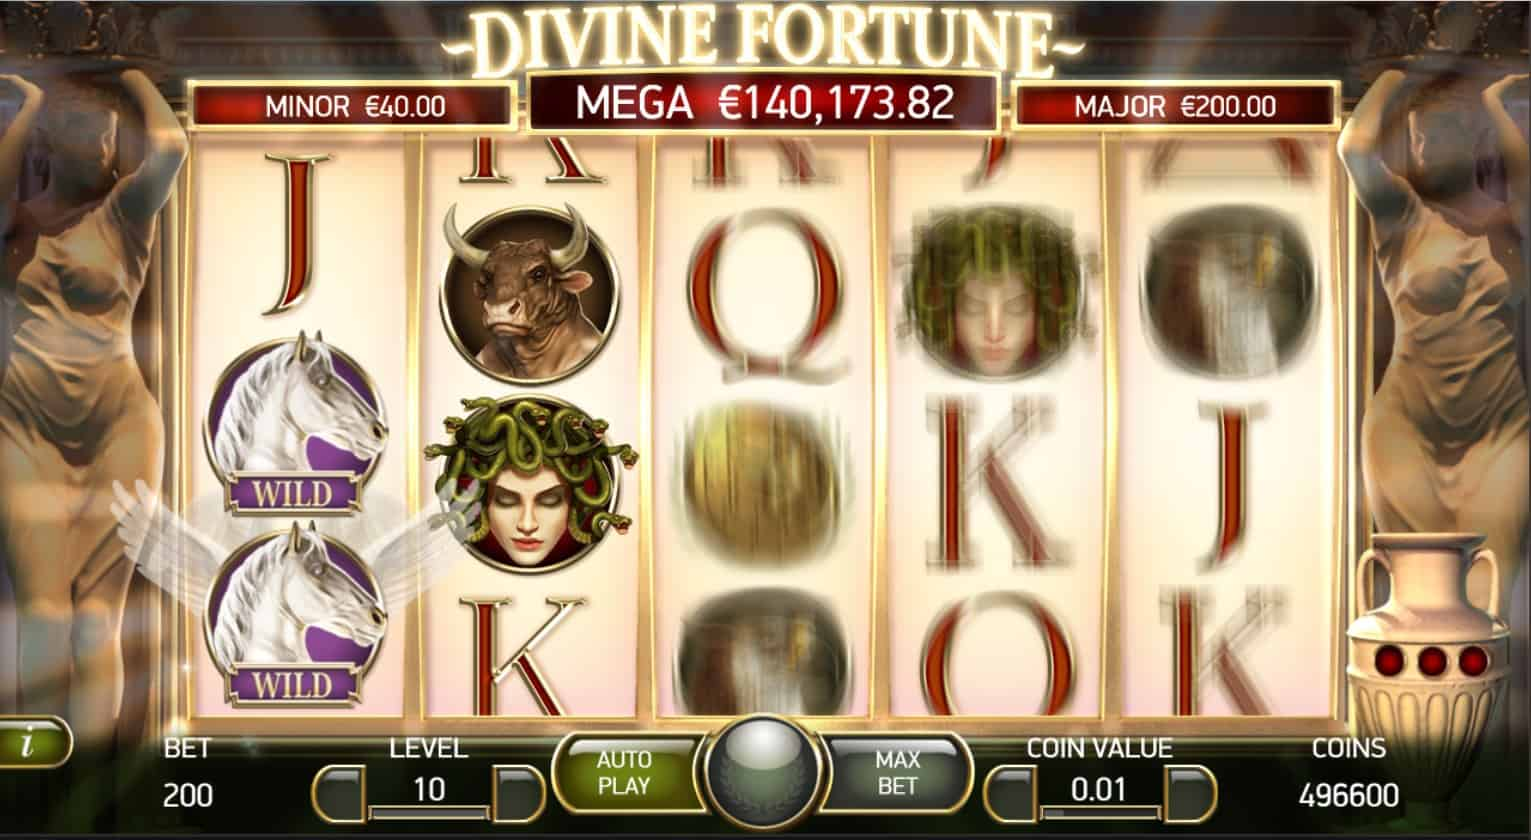 netent - divine fortune - falling wild feature-casinogroundsdotcom